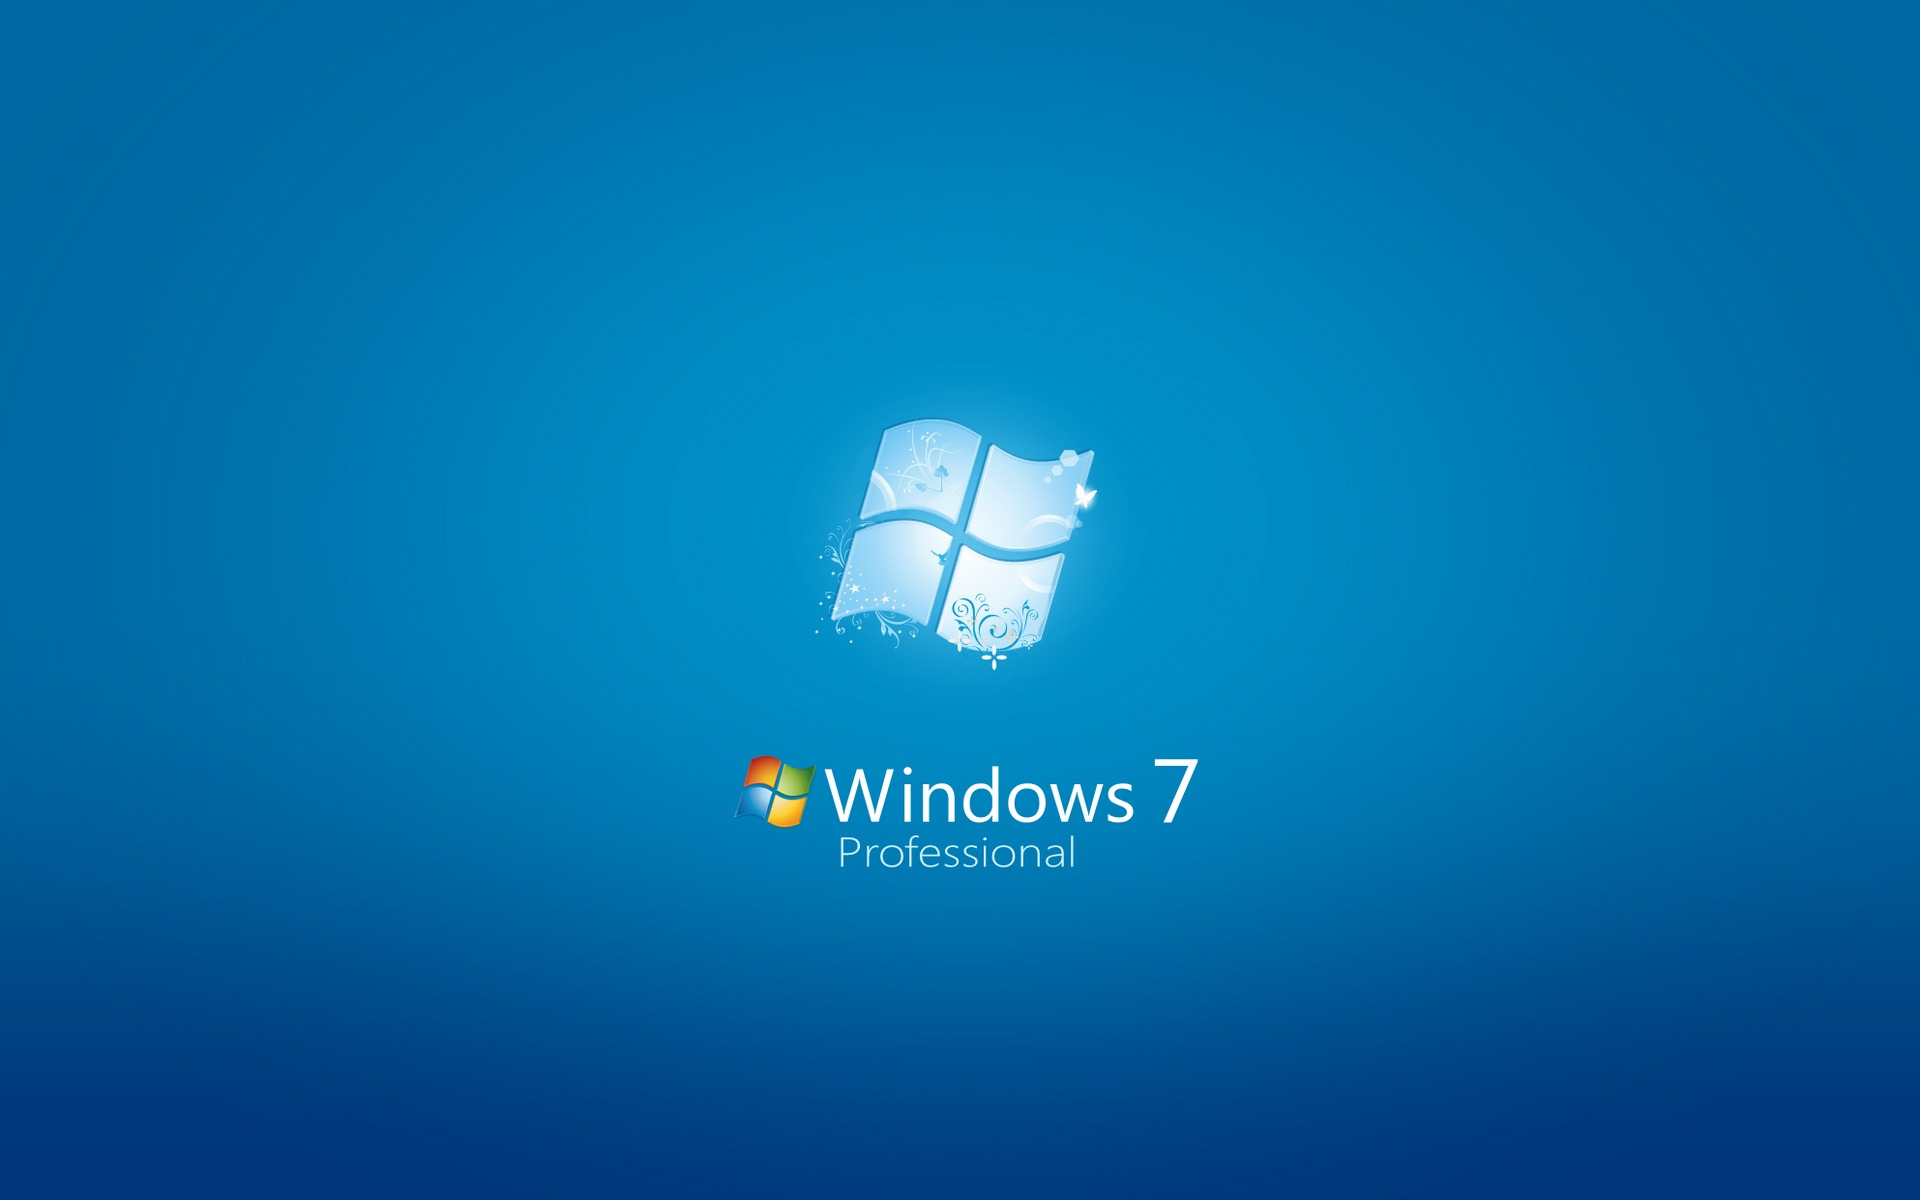 desktop wallpaper windows 7 high resolution   wwwwallpapers in hdcom 1920x1200